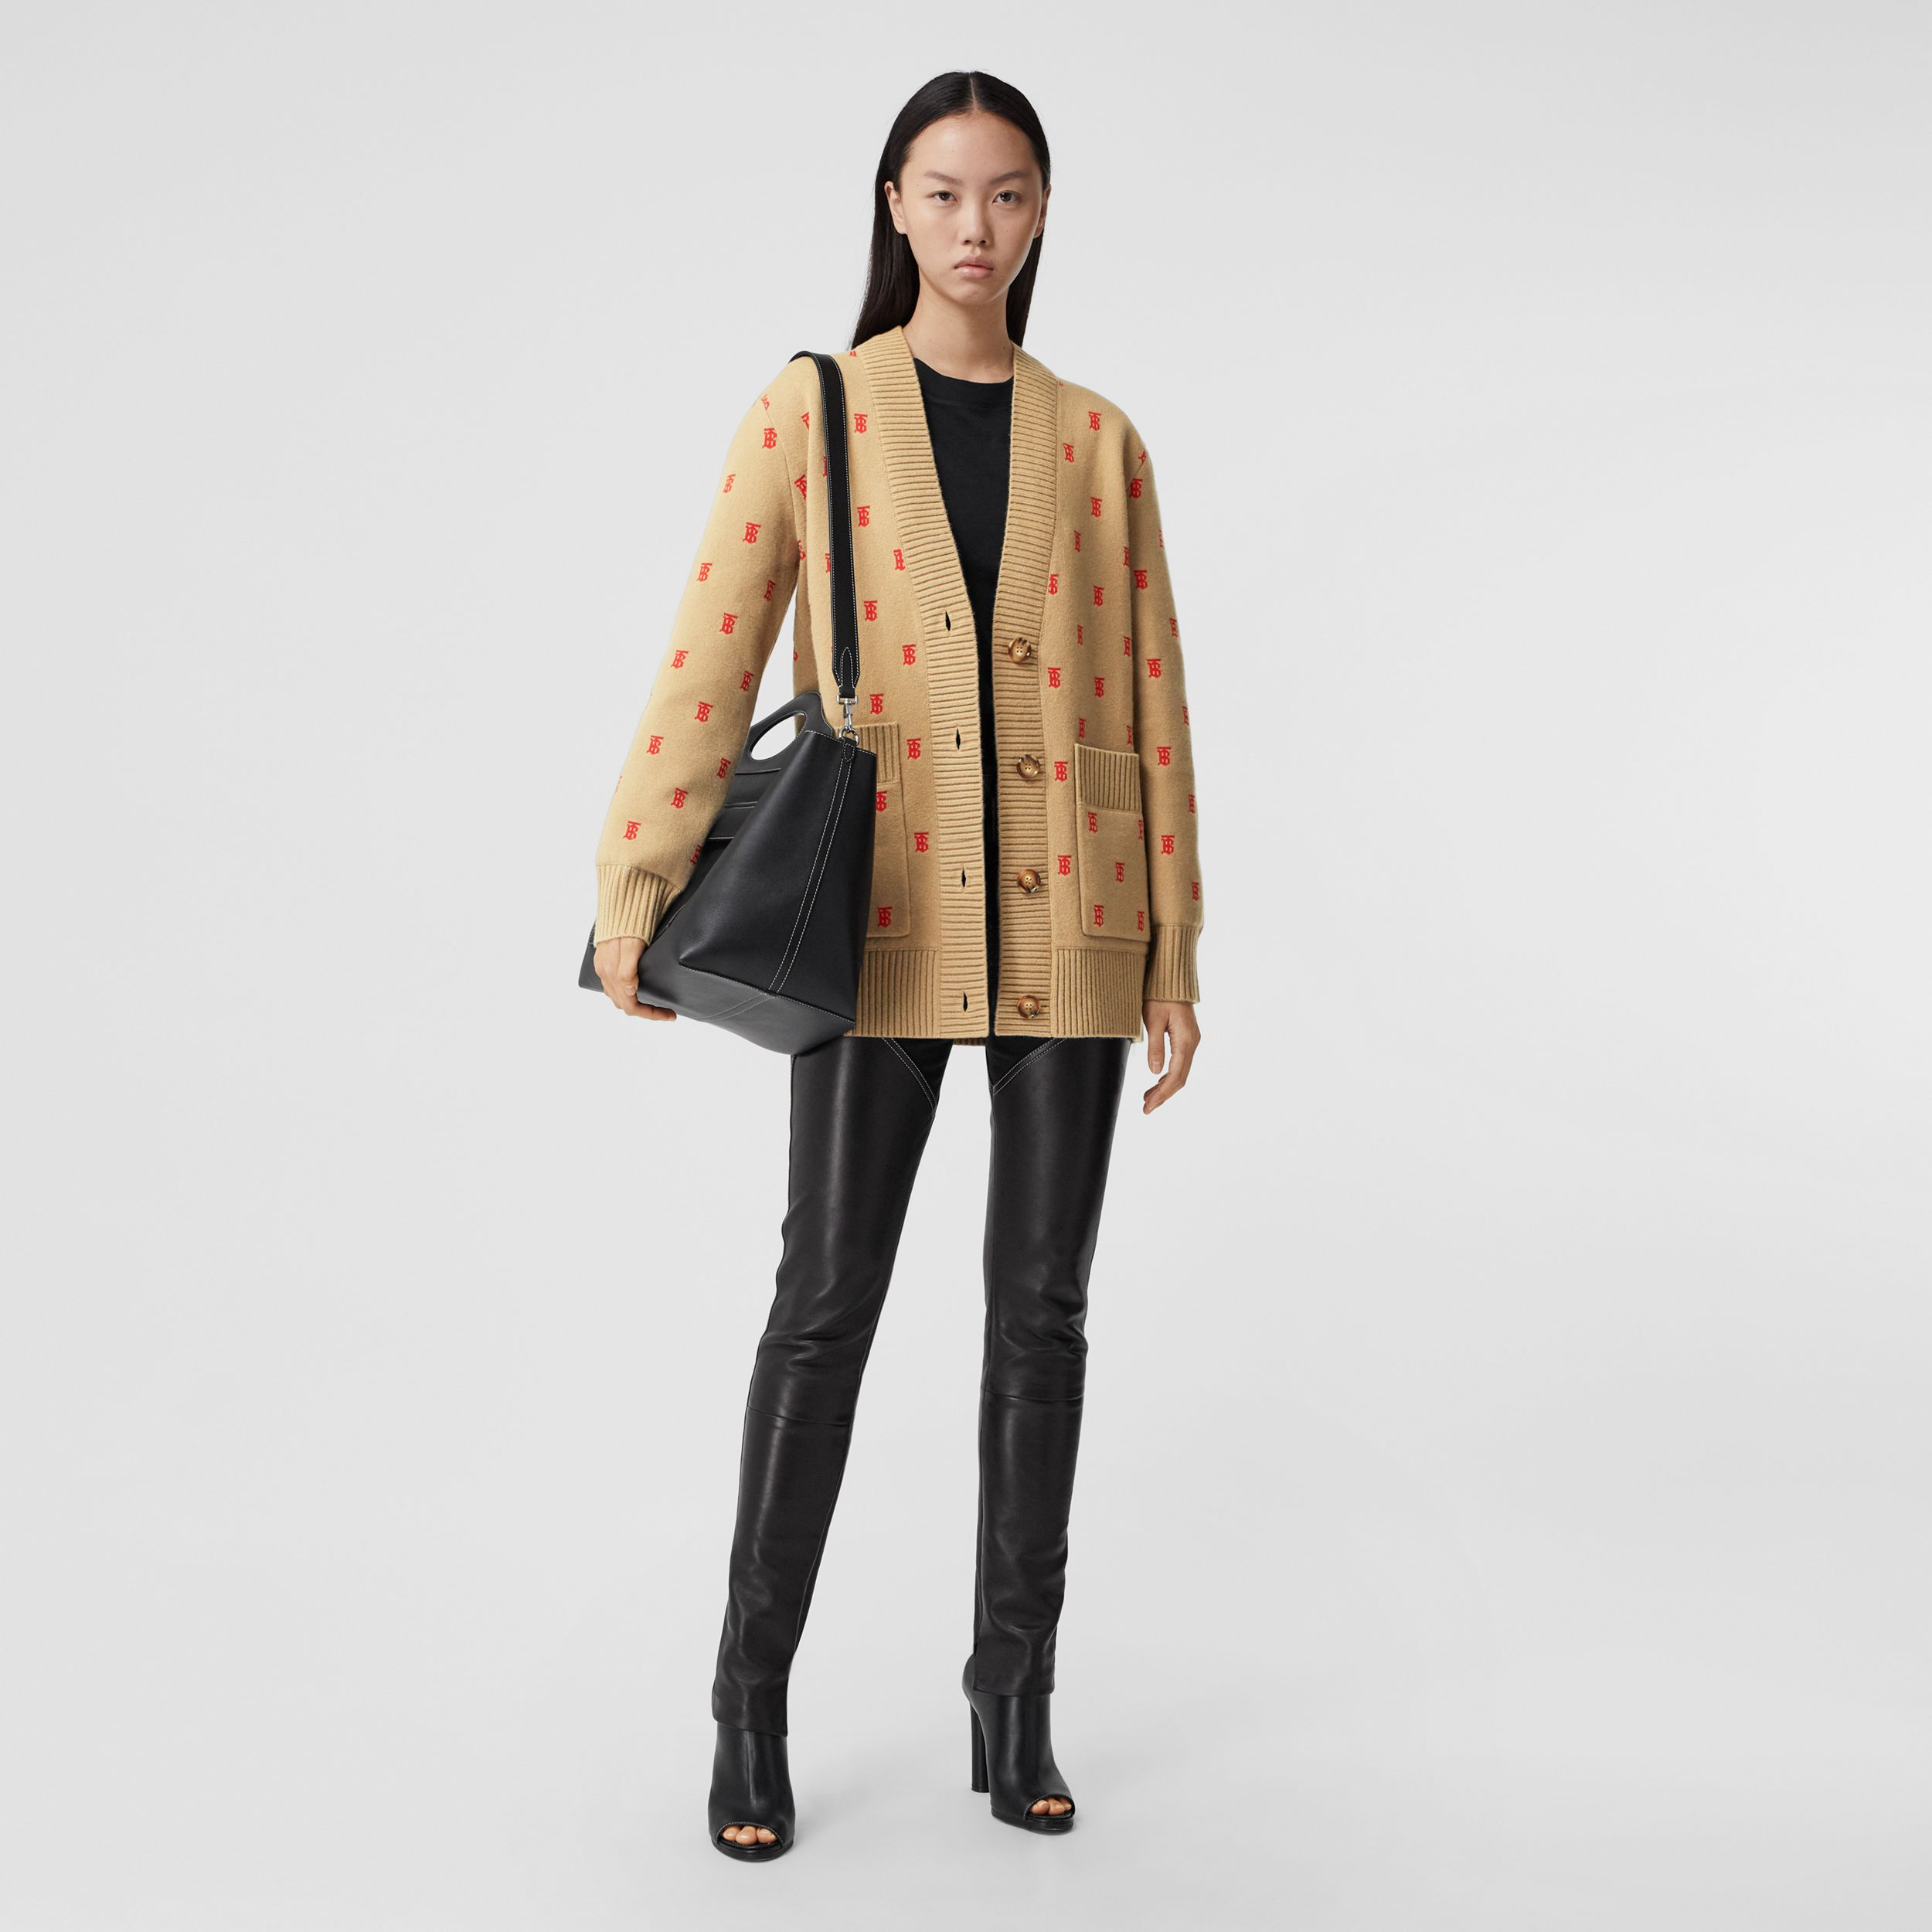 Monogram Wool Cashmere Blend Oversized Cardigan in Archive Beige - Women | Burberry Hong Kong S.A.R. - 1